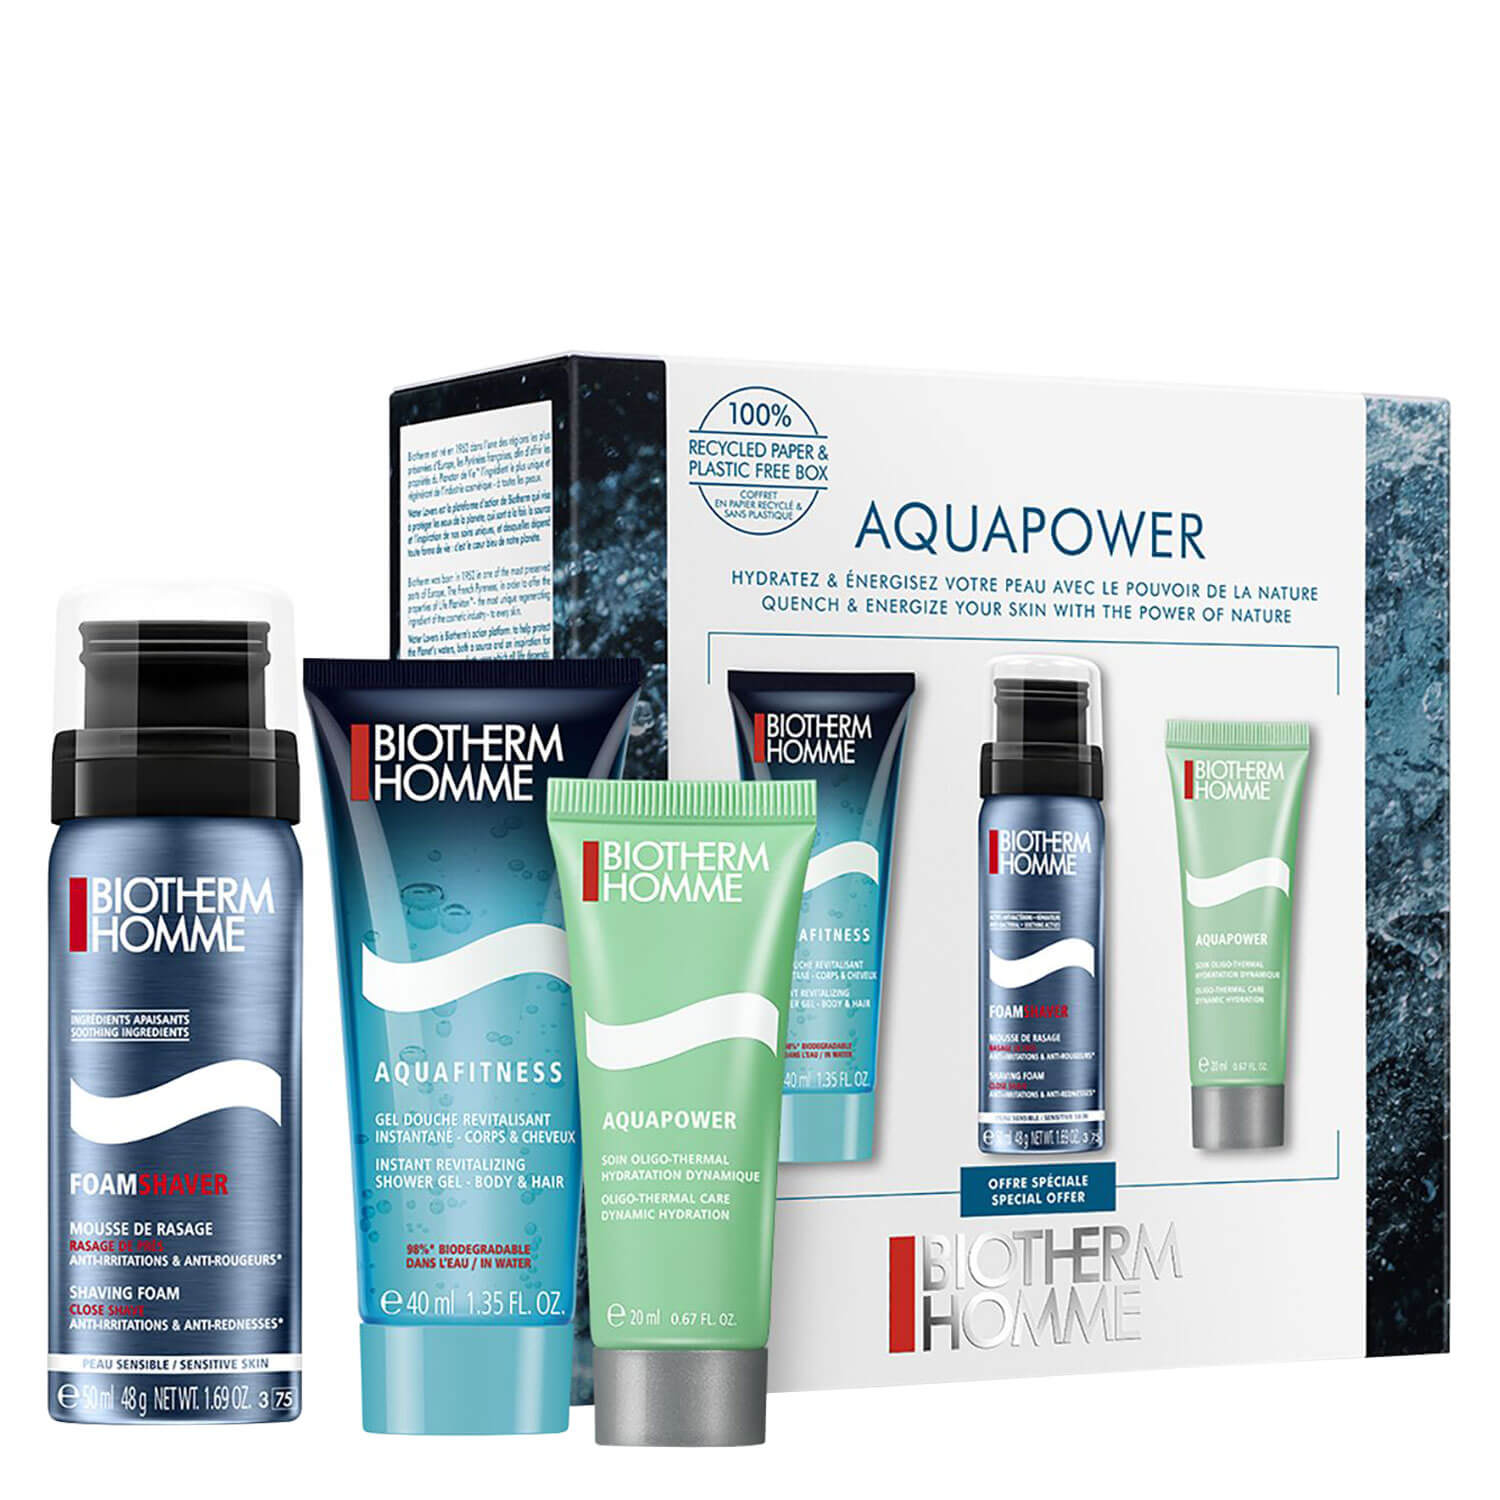 Biotherm Homme - Aquapower Trio Kit